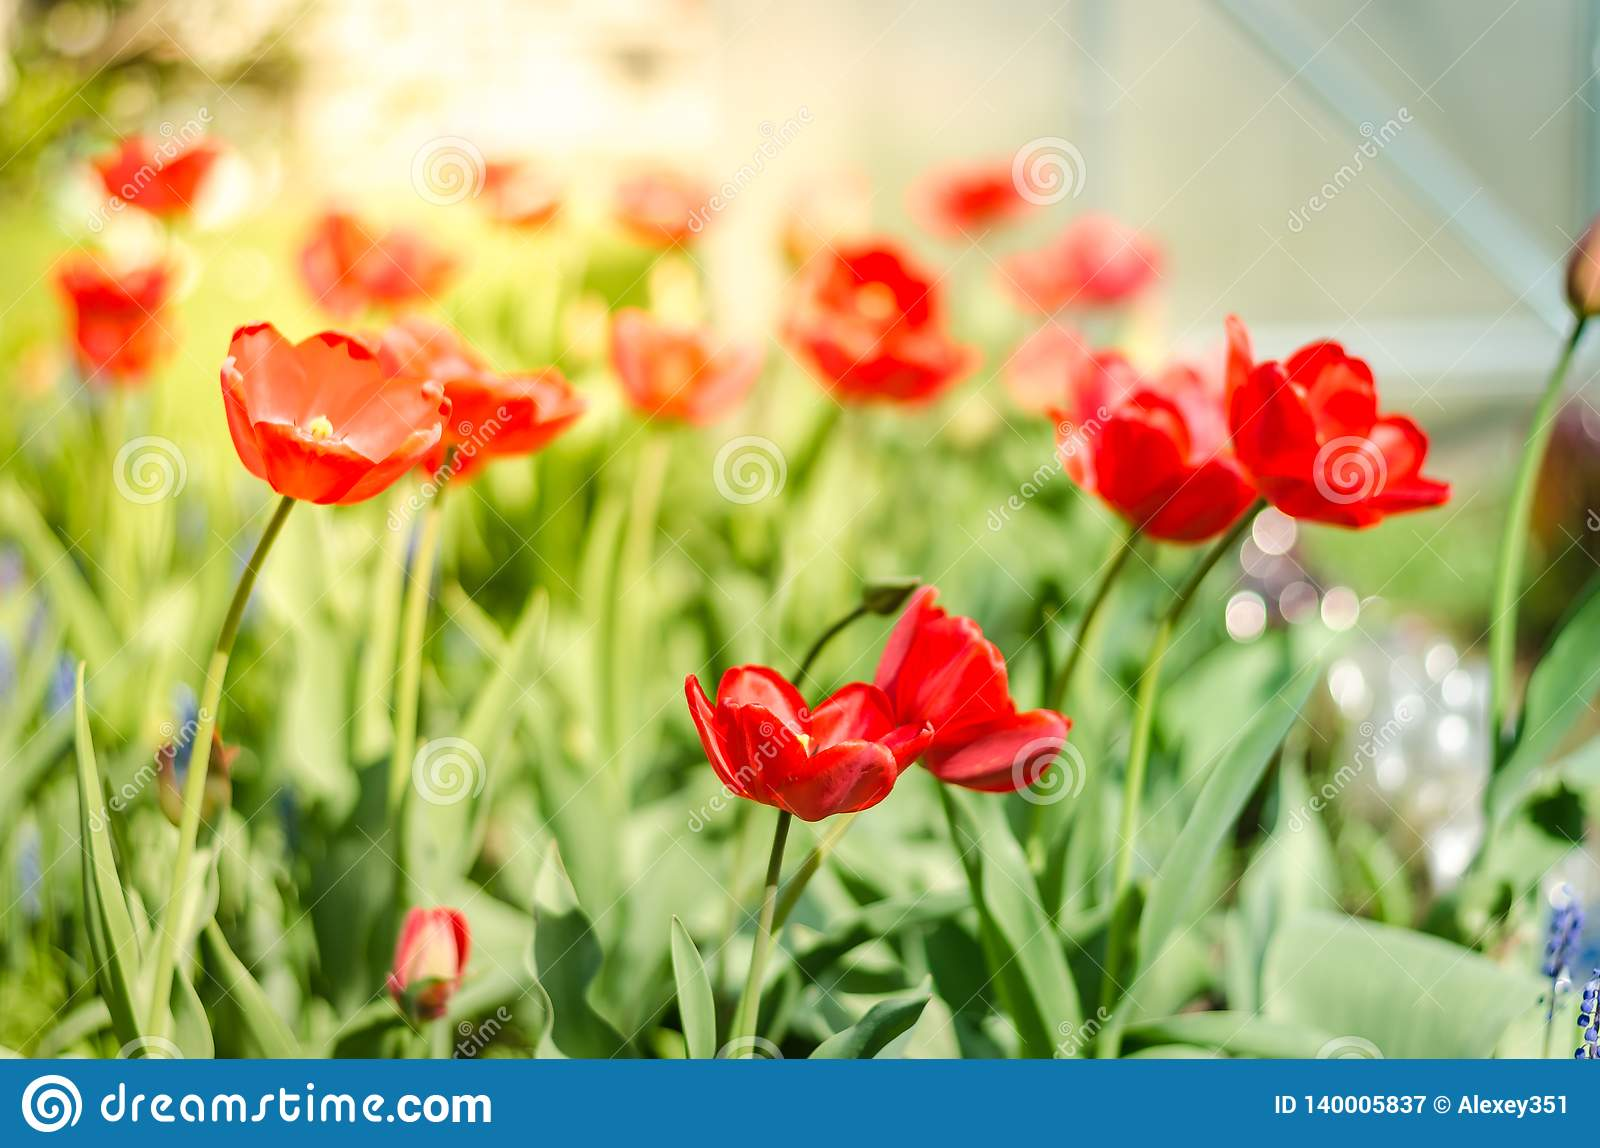 Beautiful nature scene with blooming red tulip in sun flare/Beautiful meadow. Field flowers red tulip